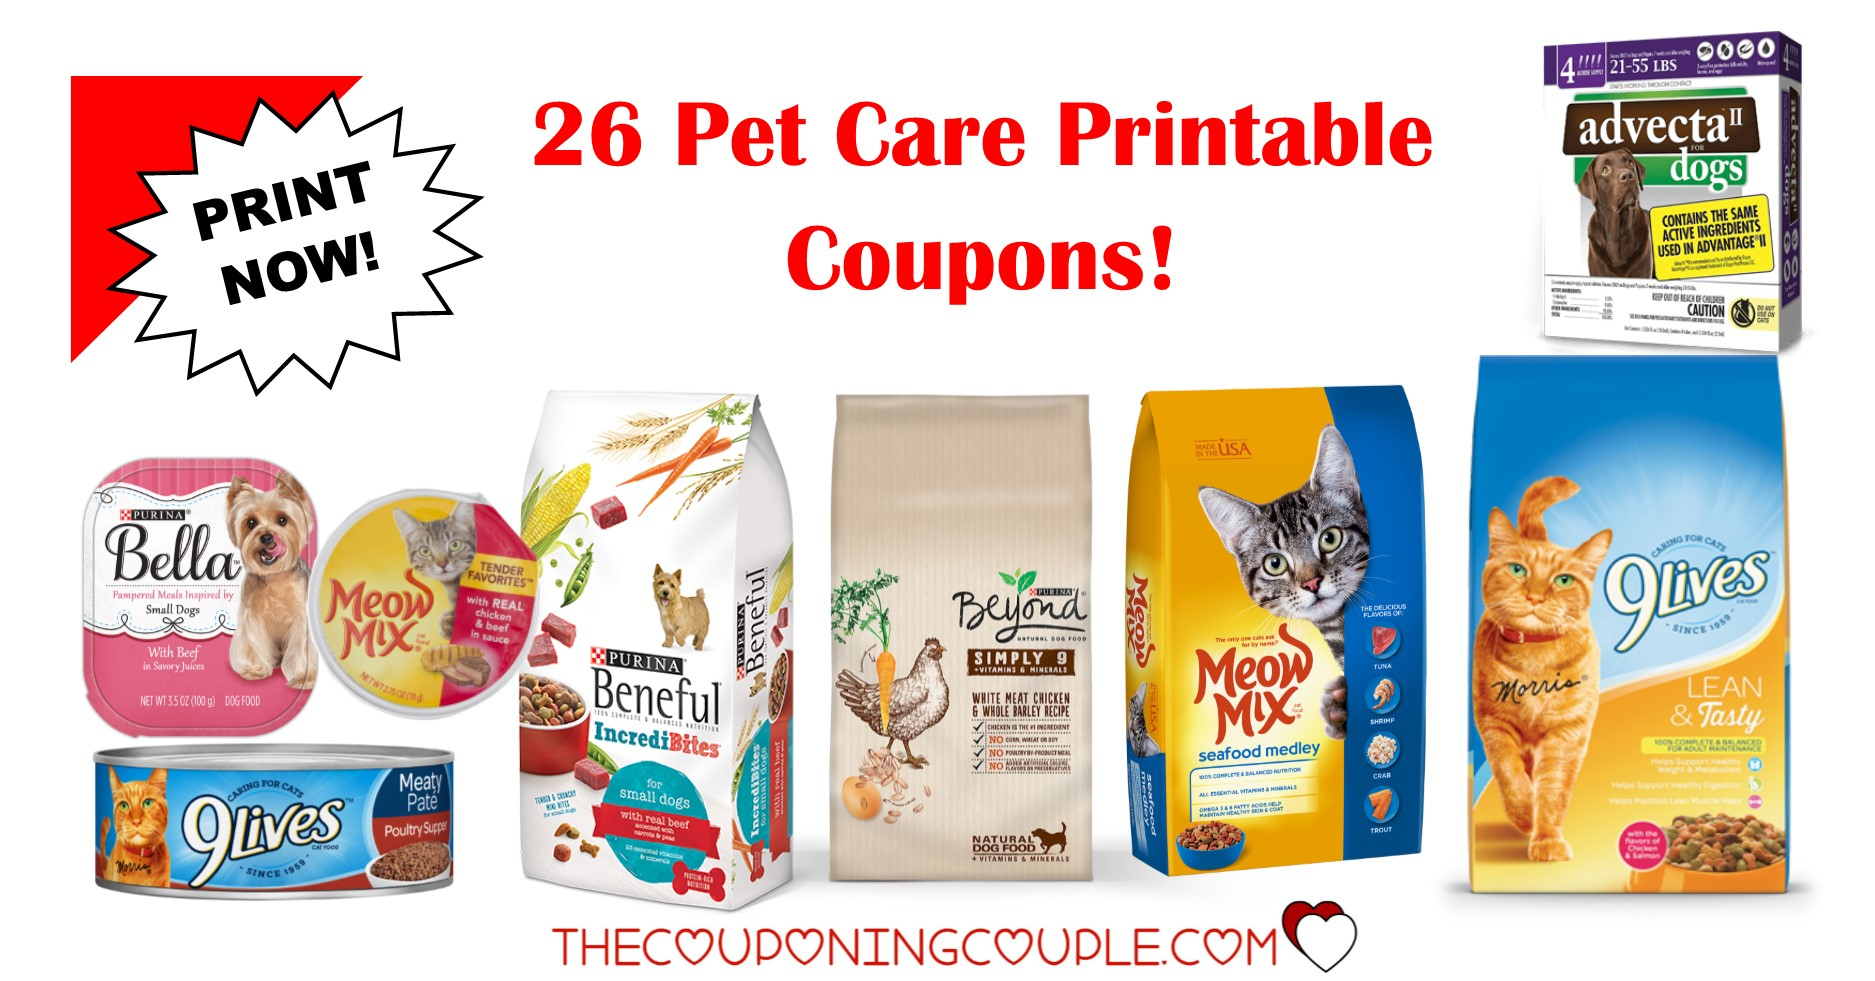 26 Pet Care Printable Coupons ~ Over $42 In Savings!!! - Free Printable 9 Lives Cat Food Coupons